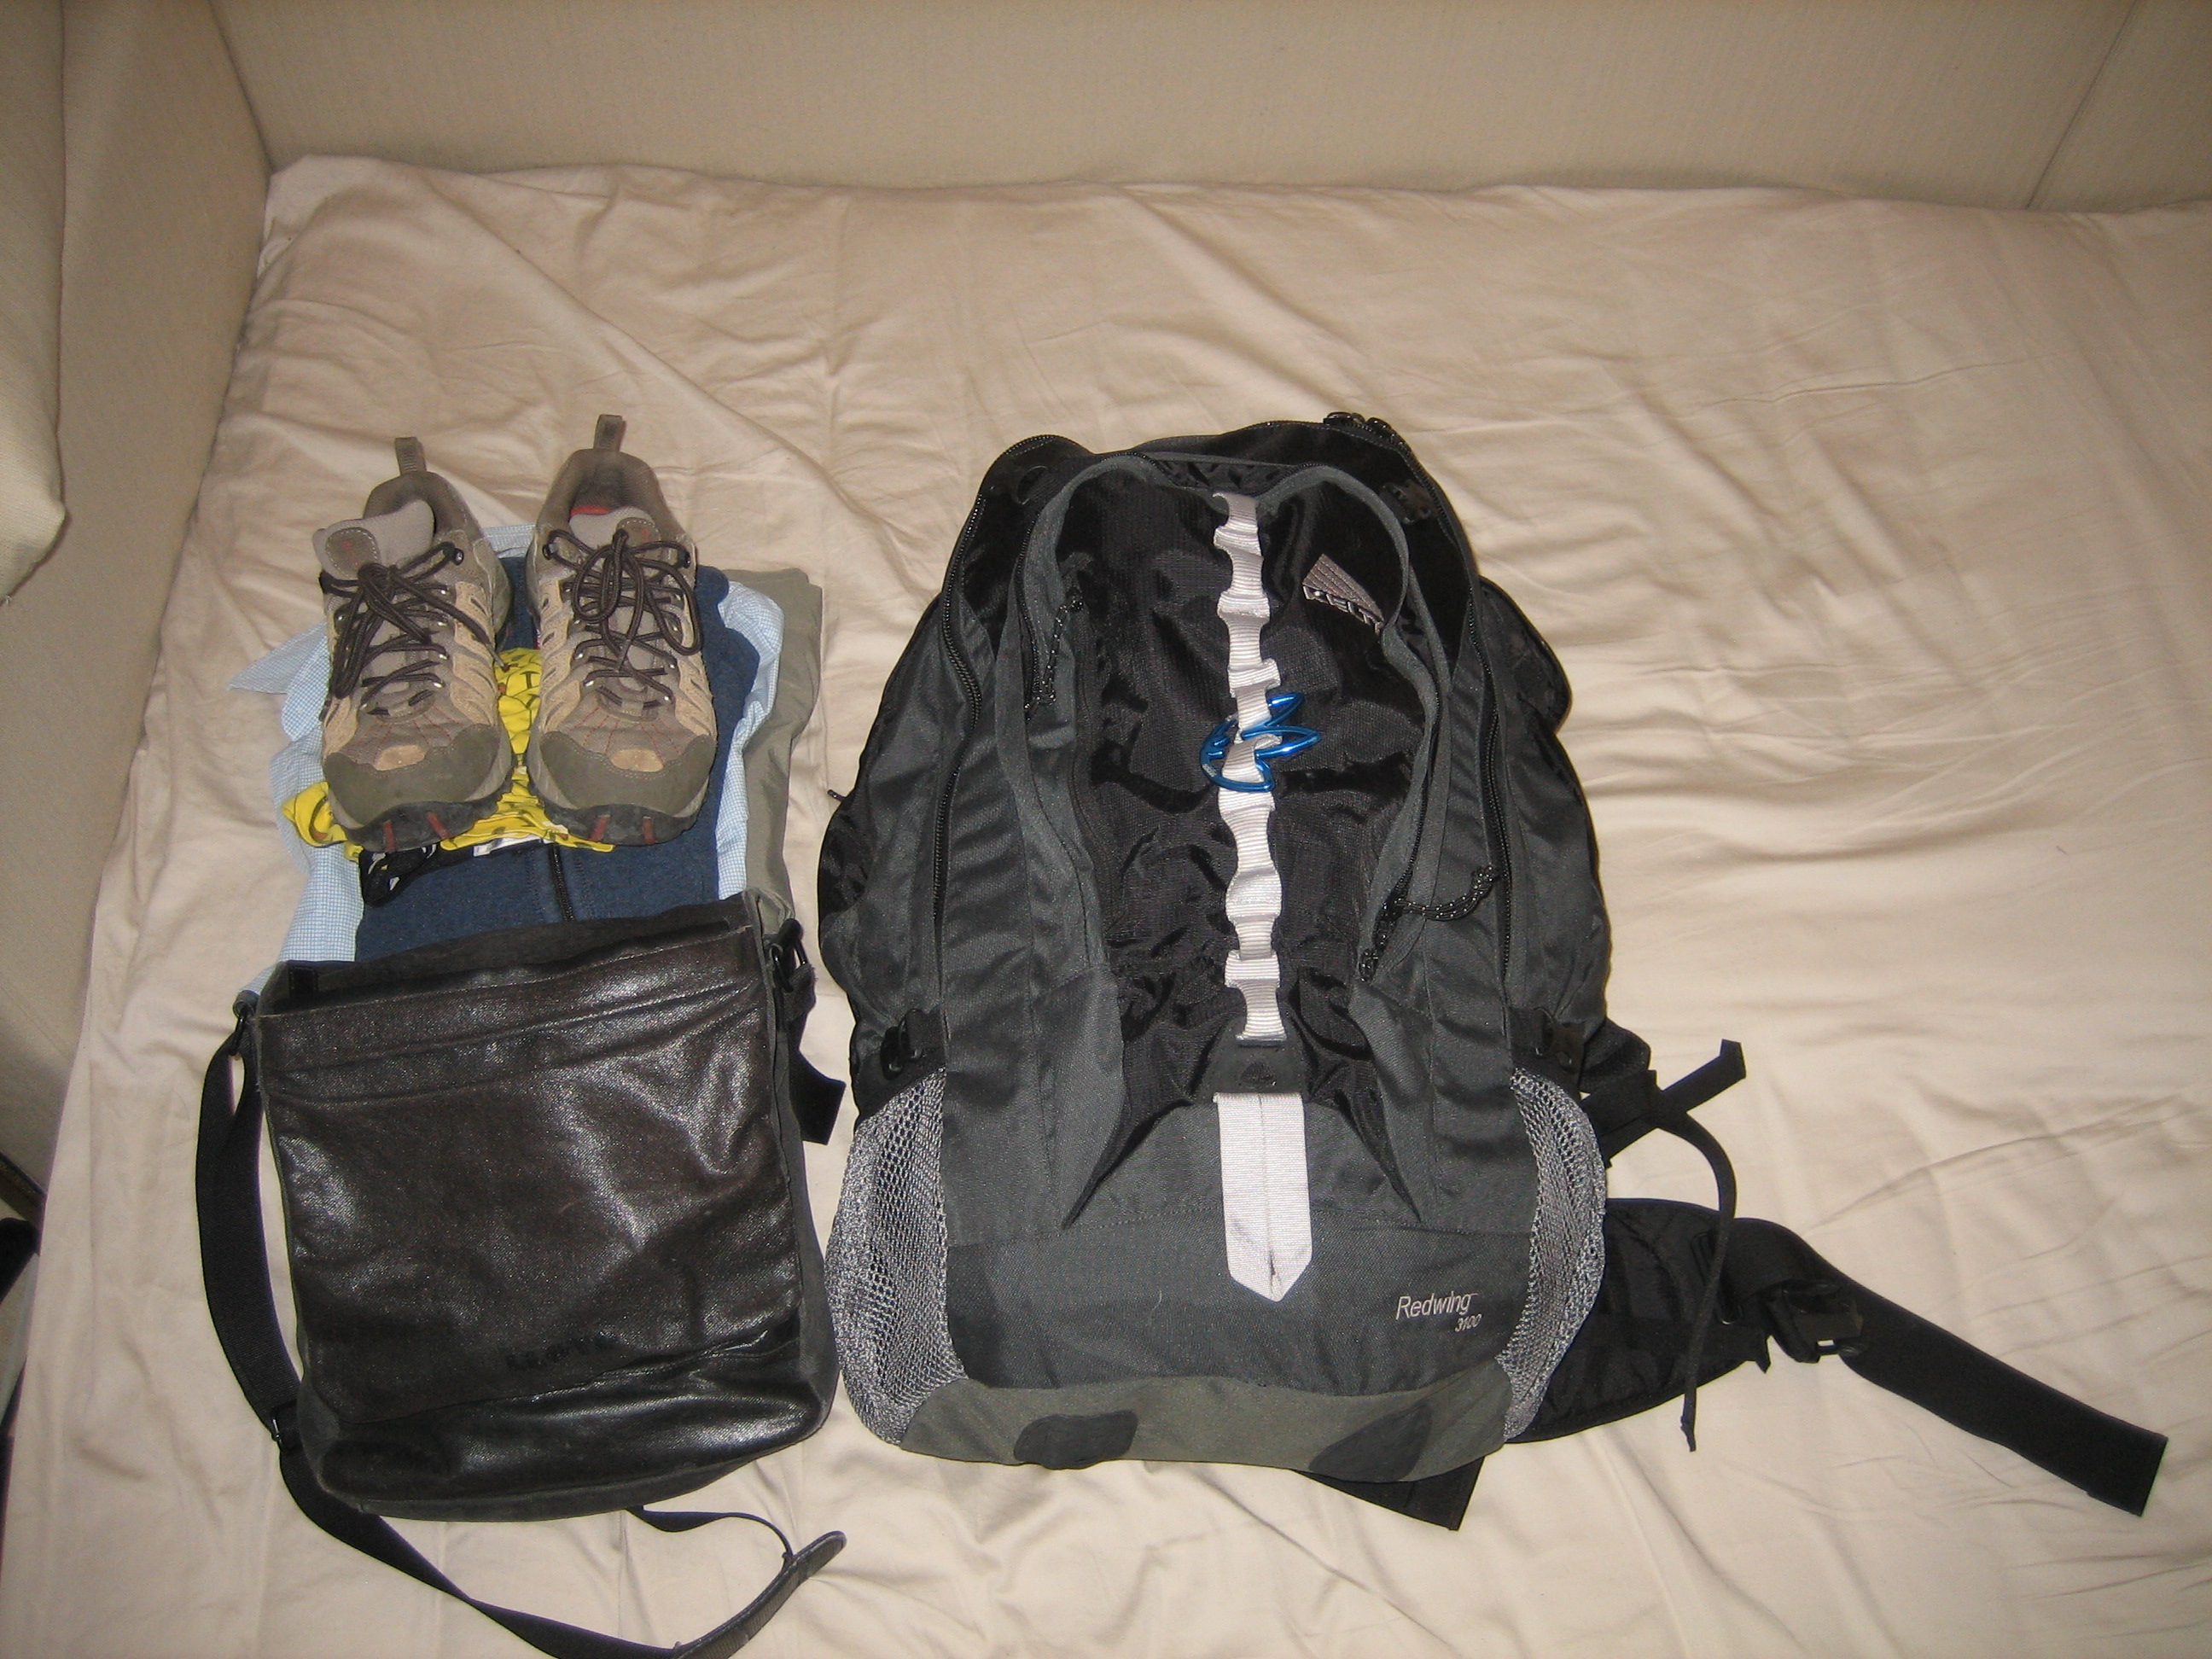 Everything packed and ready to go (except the travelling clothes)